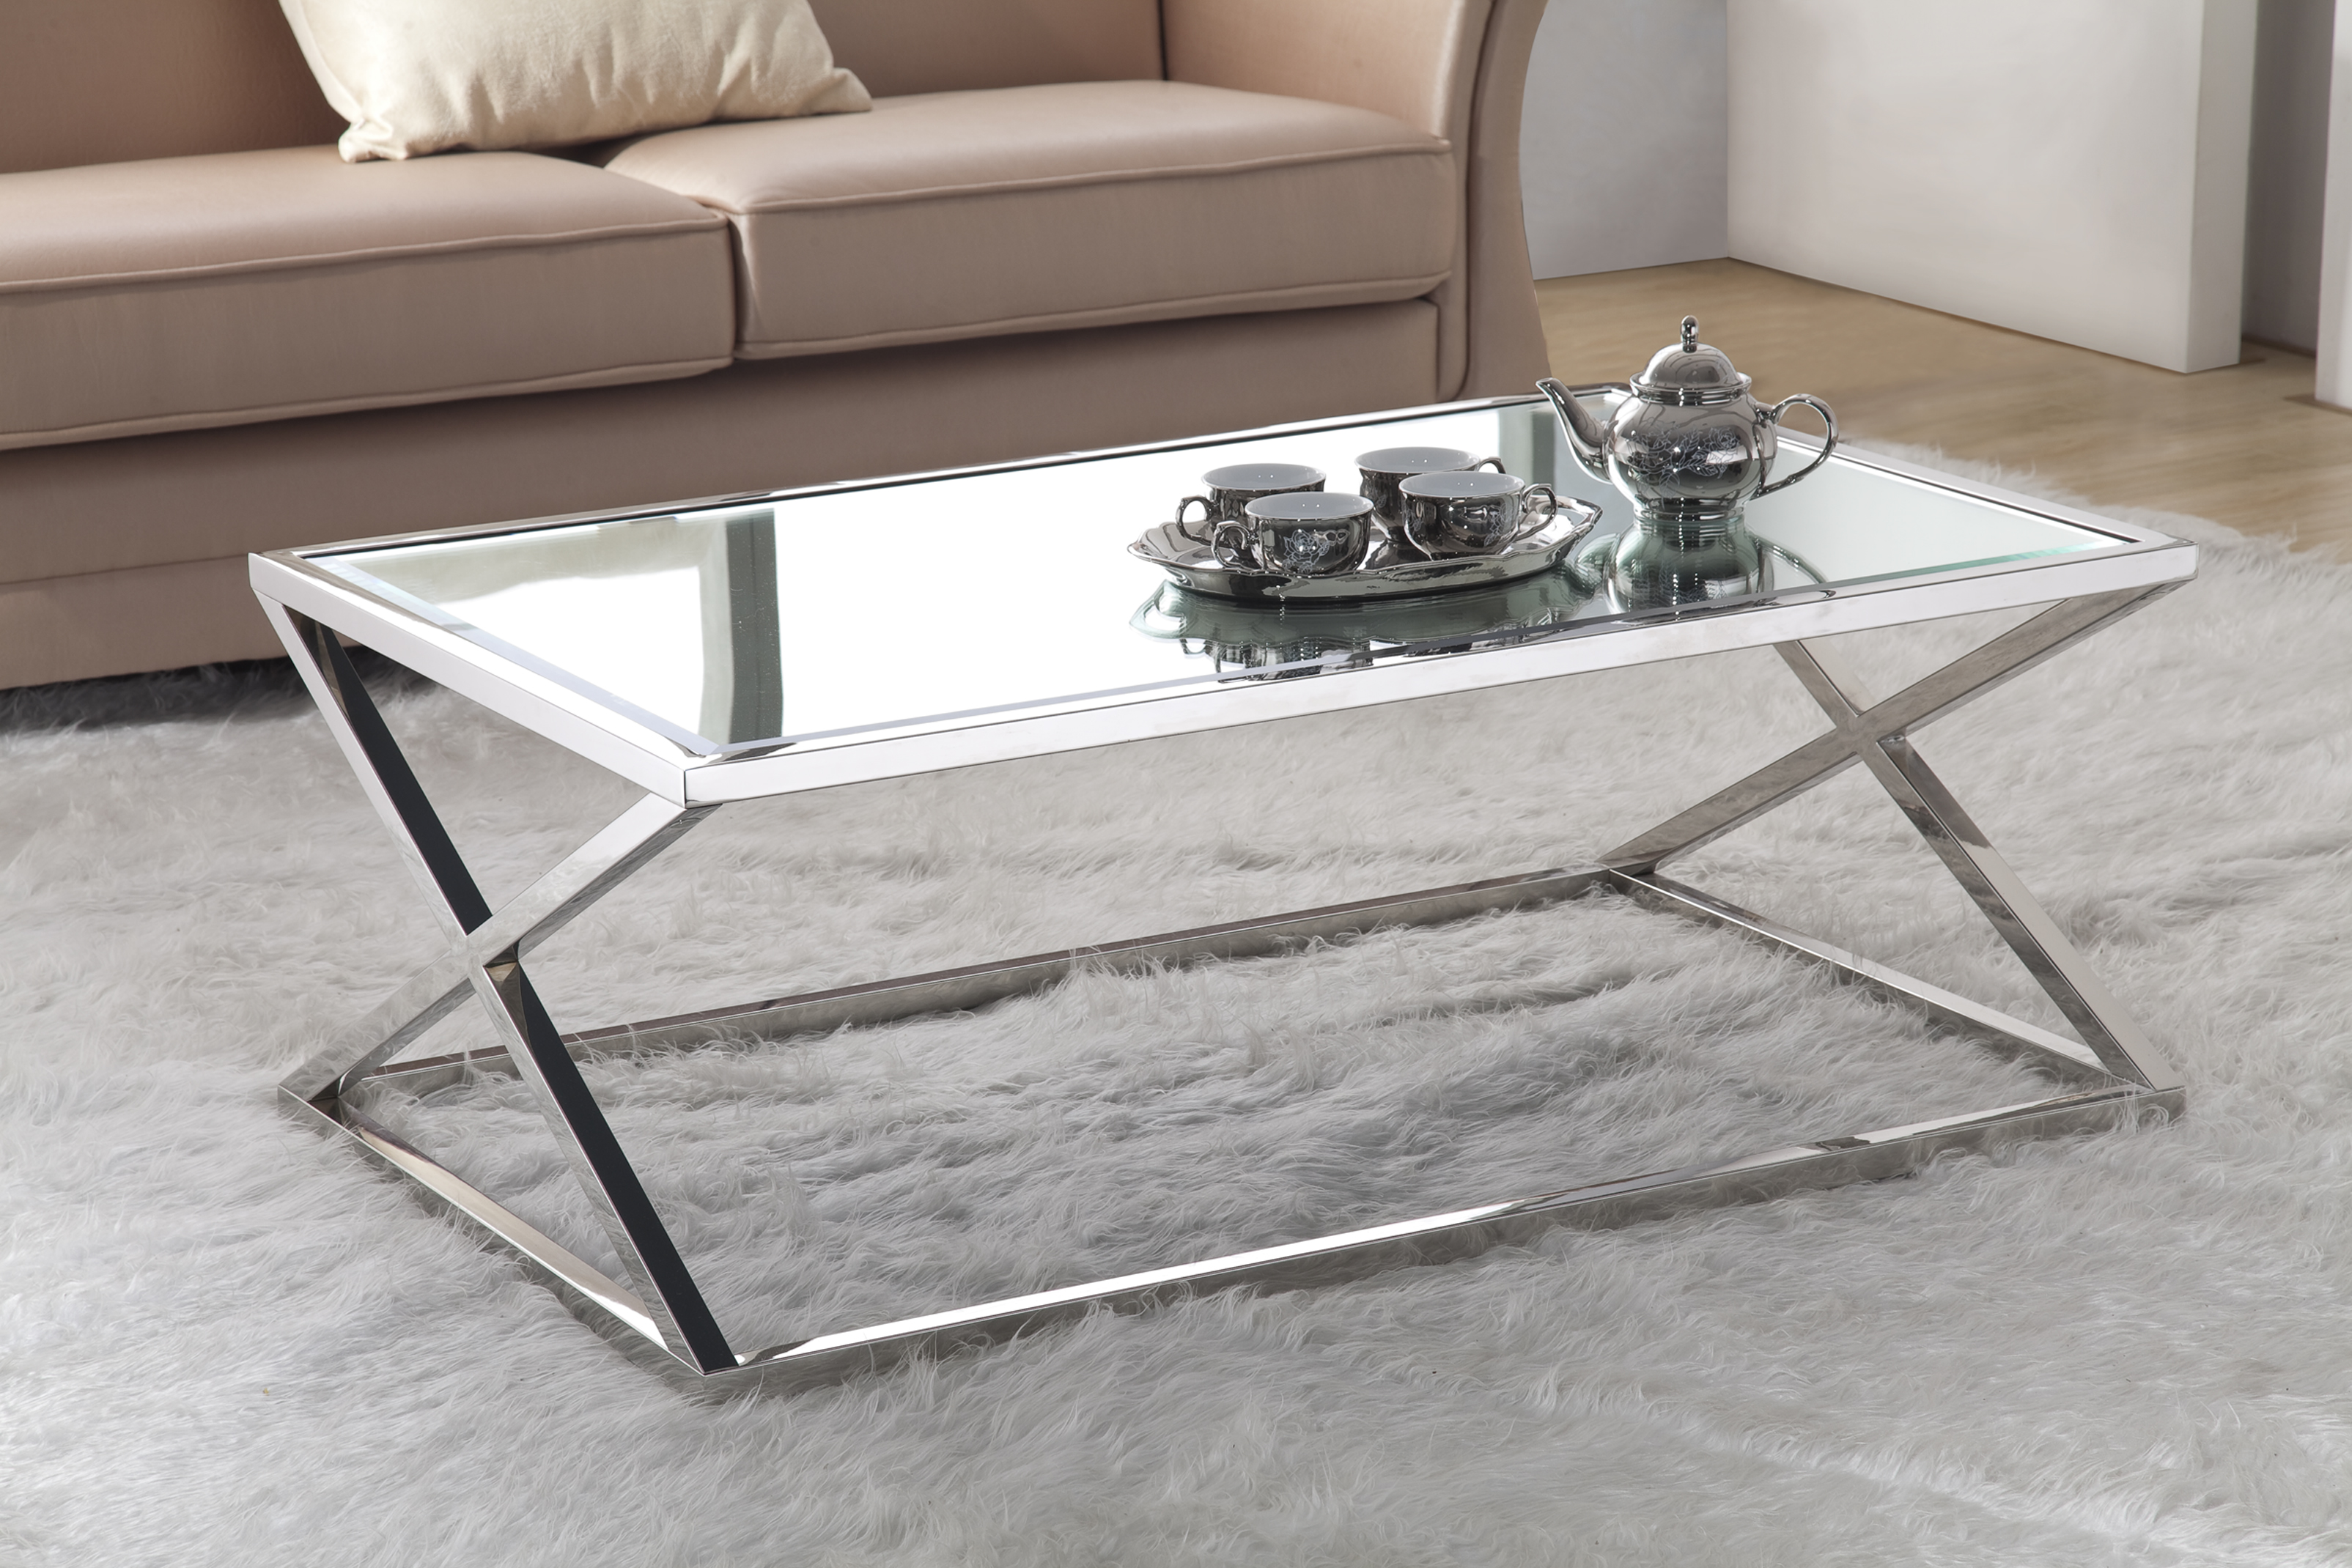 Perfect Stainless Steel Glass Coffee Table 3209 x 2140 · 2760 kB · jpeg